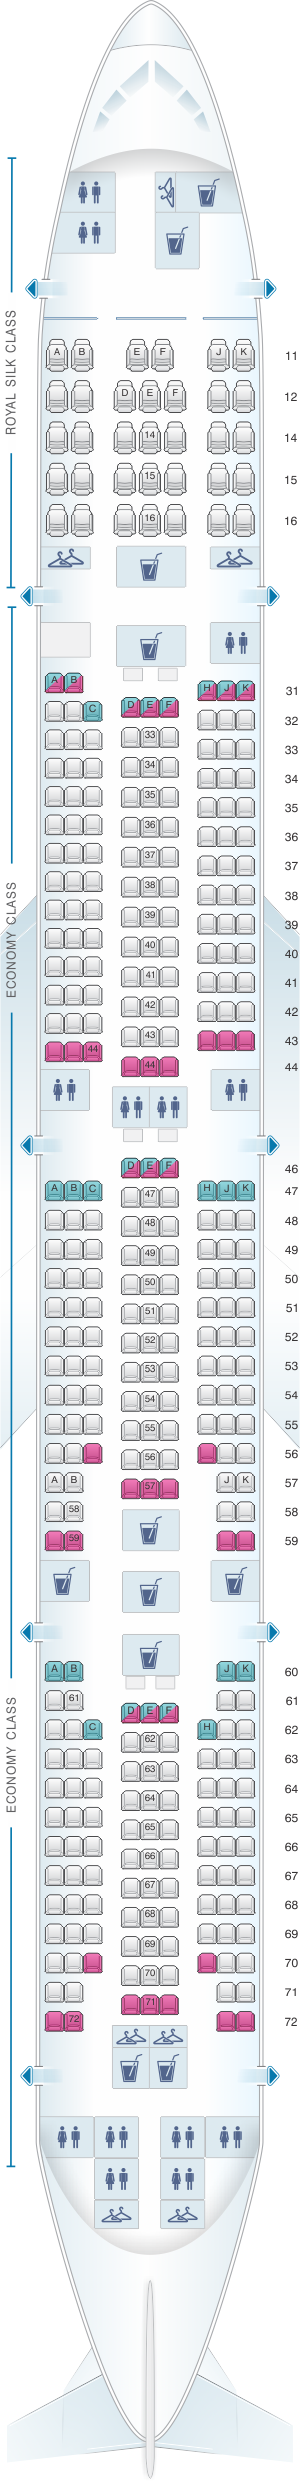 etihad airlines boeing 777-300 seating map pdf